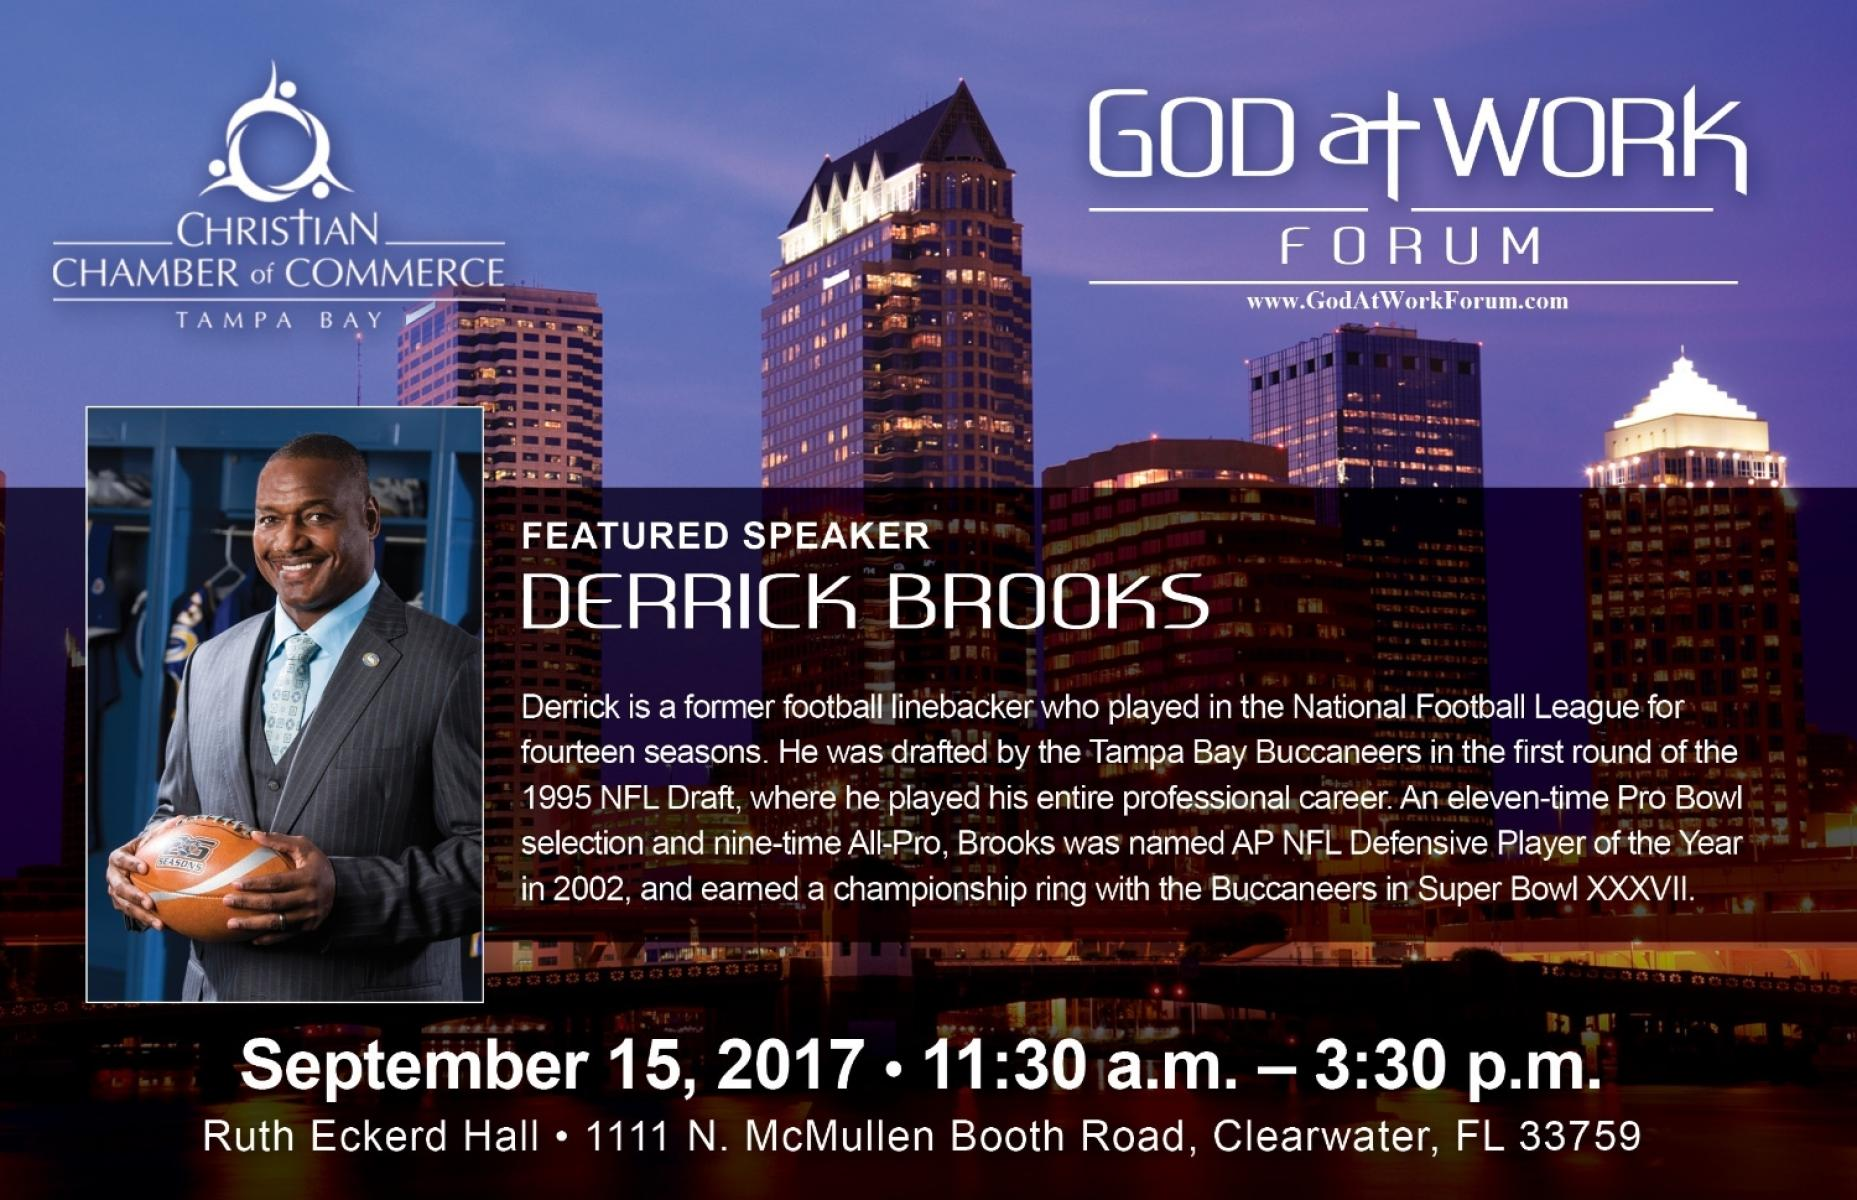 God At Work Forum